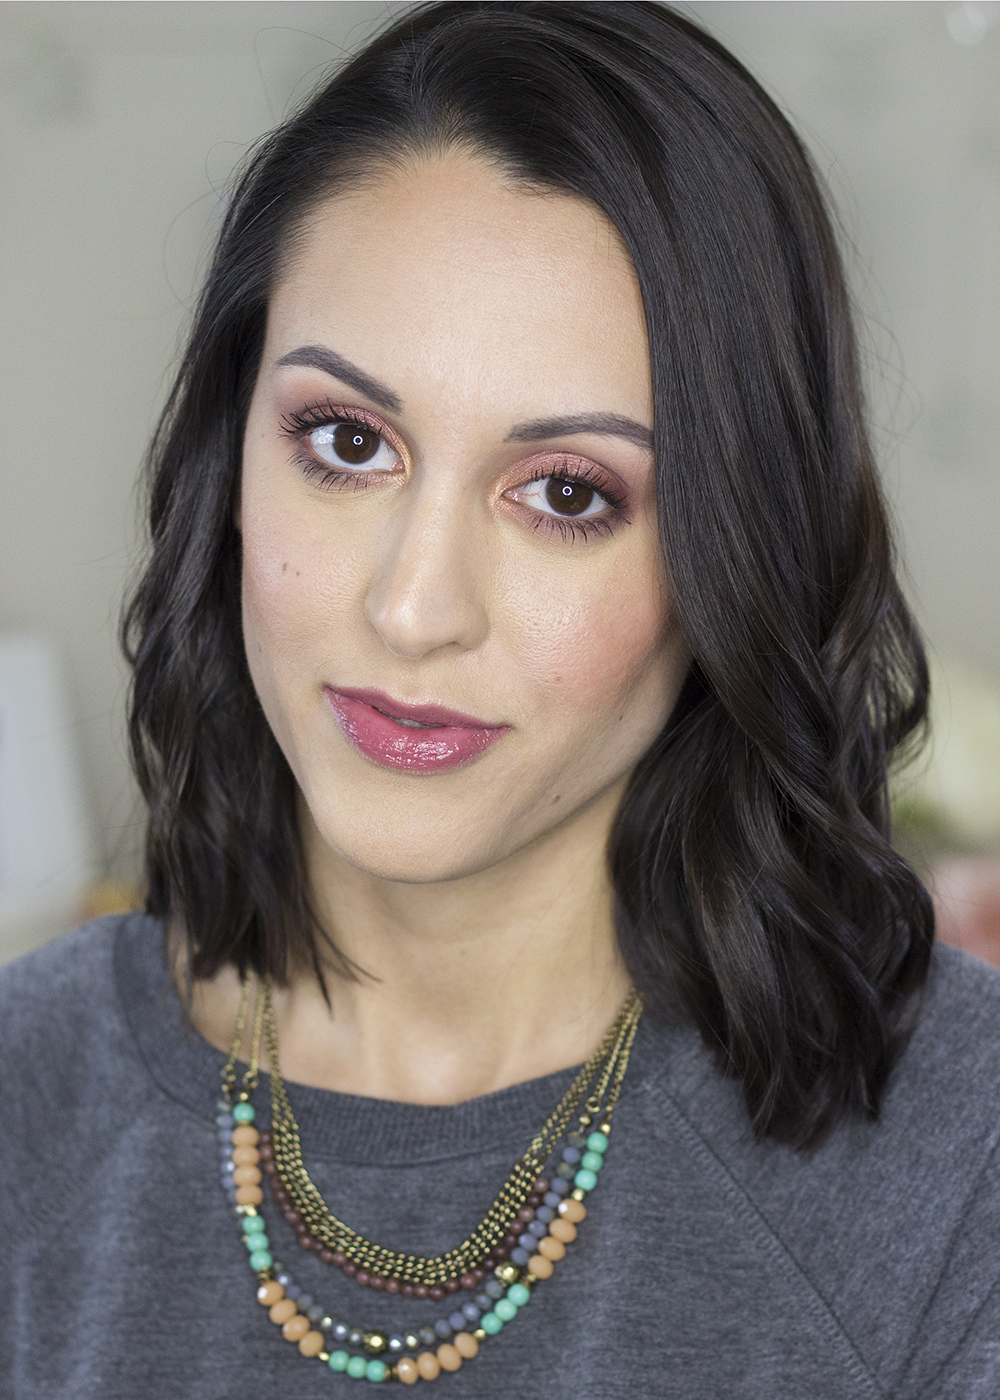 A Spring-ready makeup look using the latest launches from BareMinerals